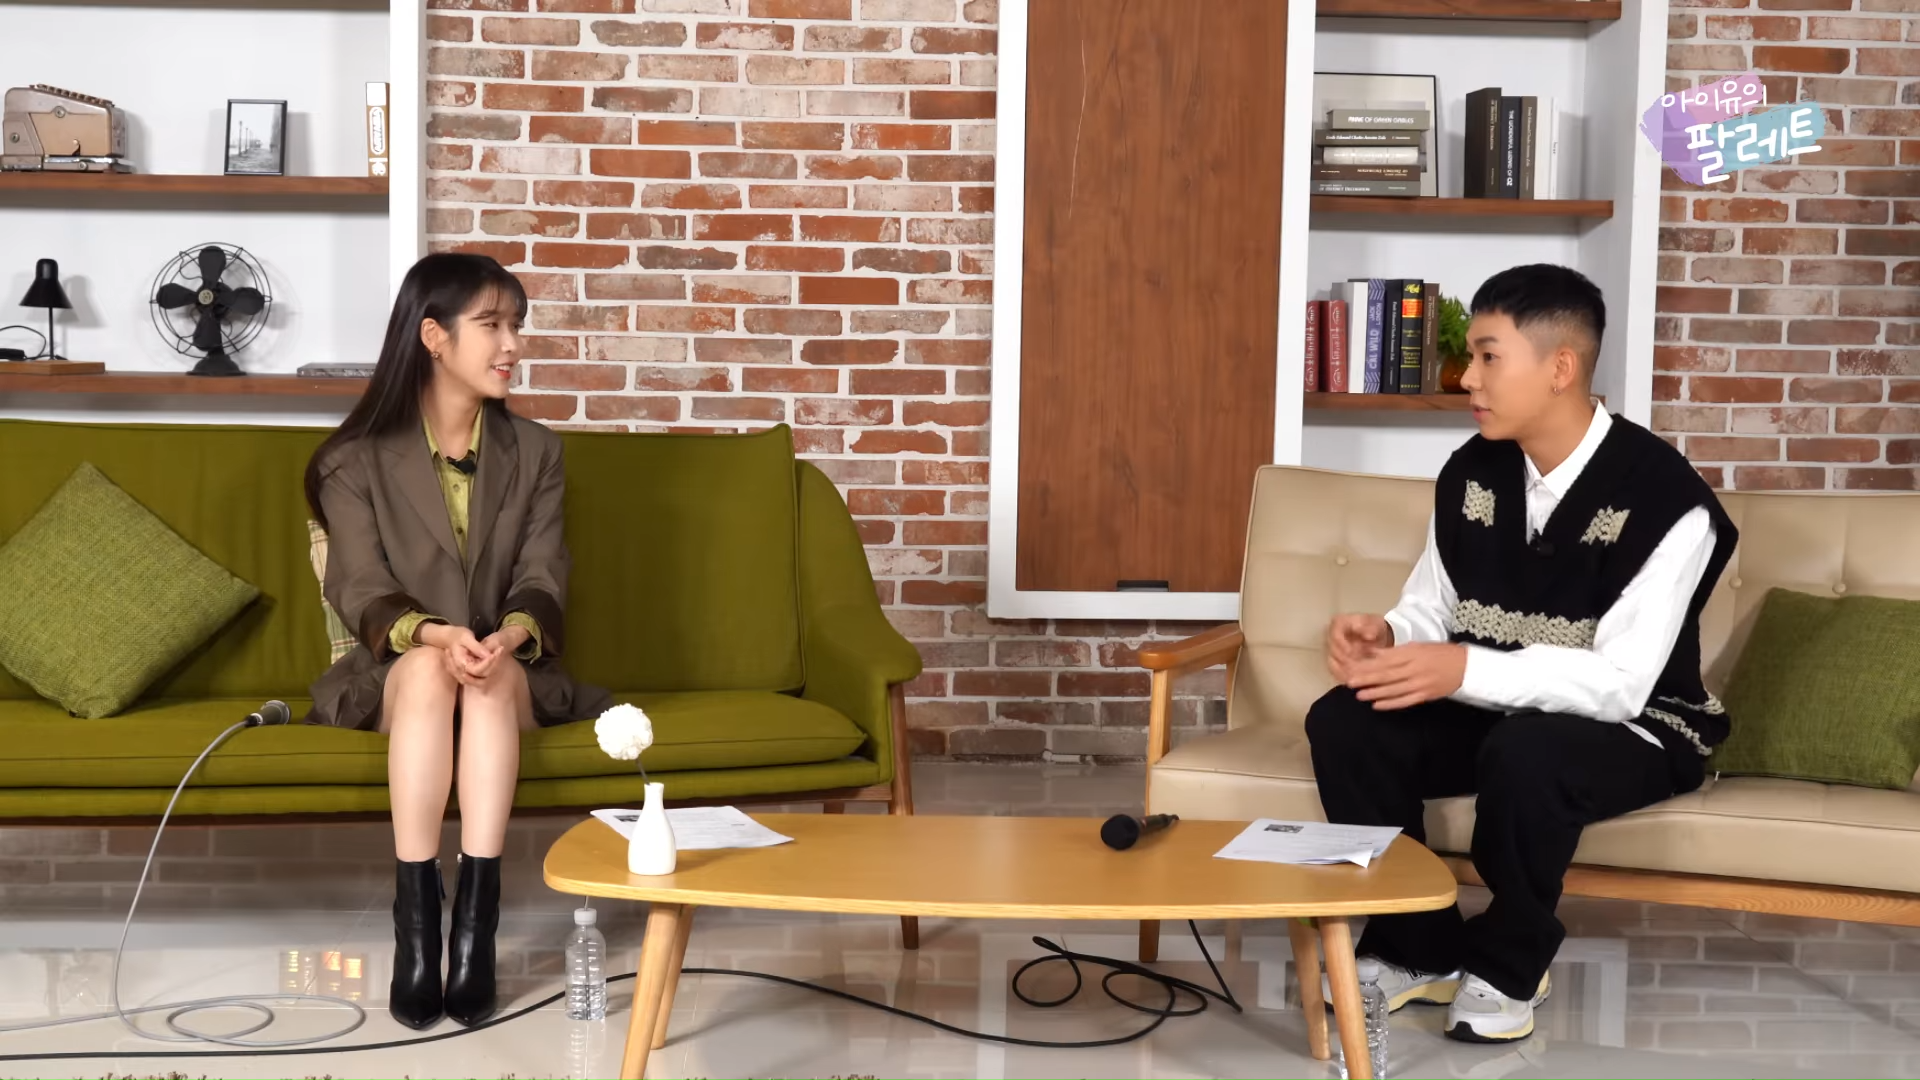 [IU's Palette] Let us draw something yummy (With Loco) Ep.2 1-53 screenshot